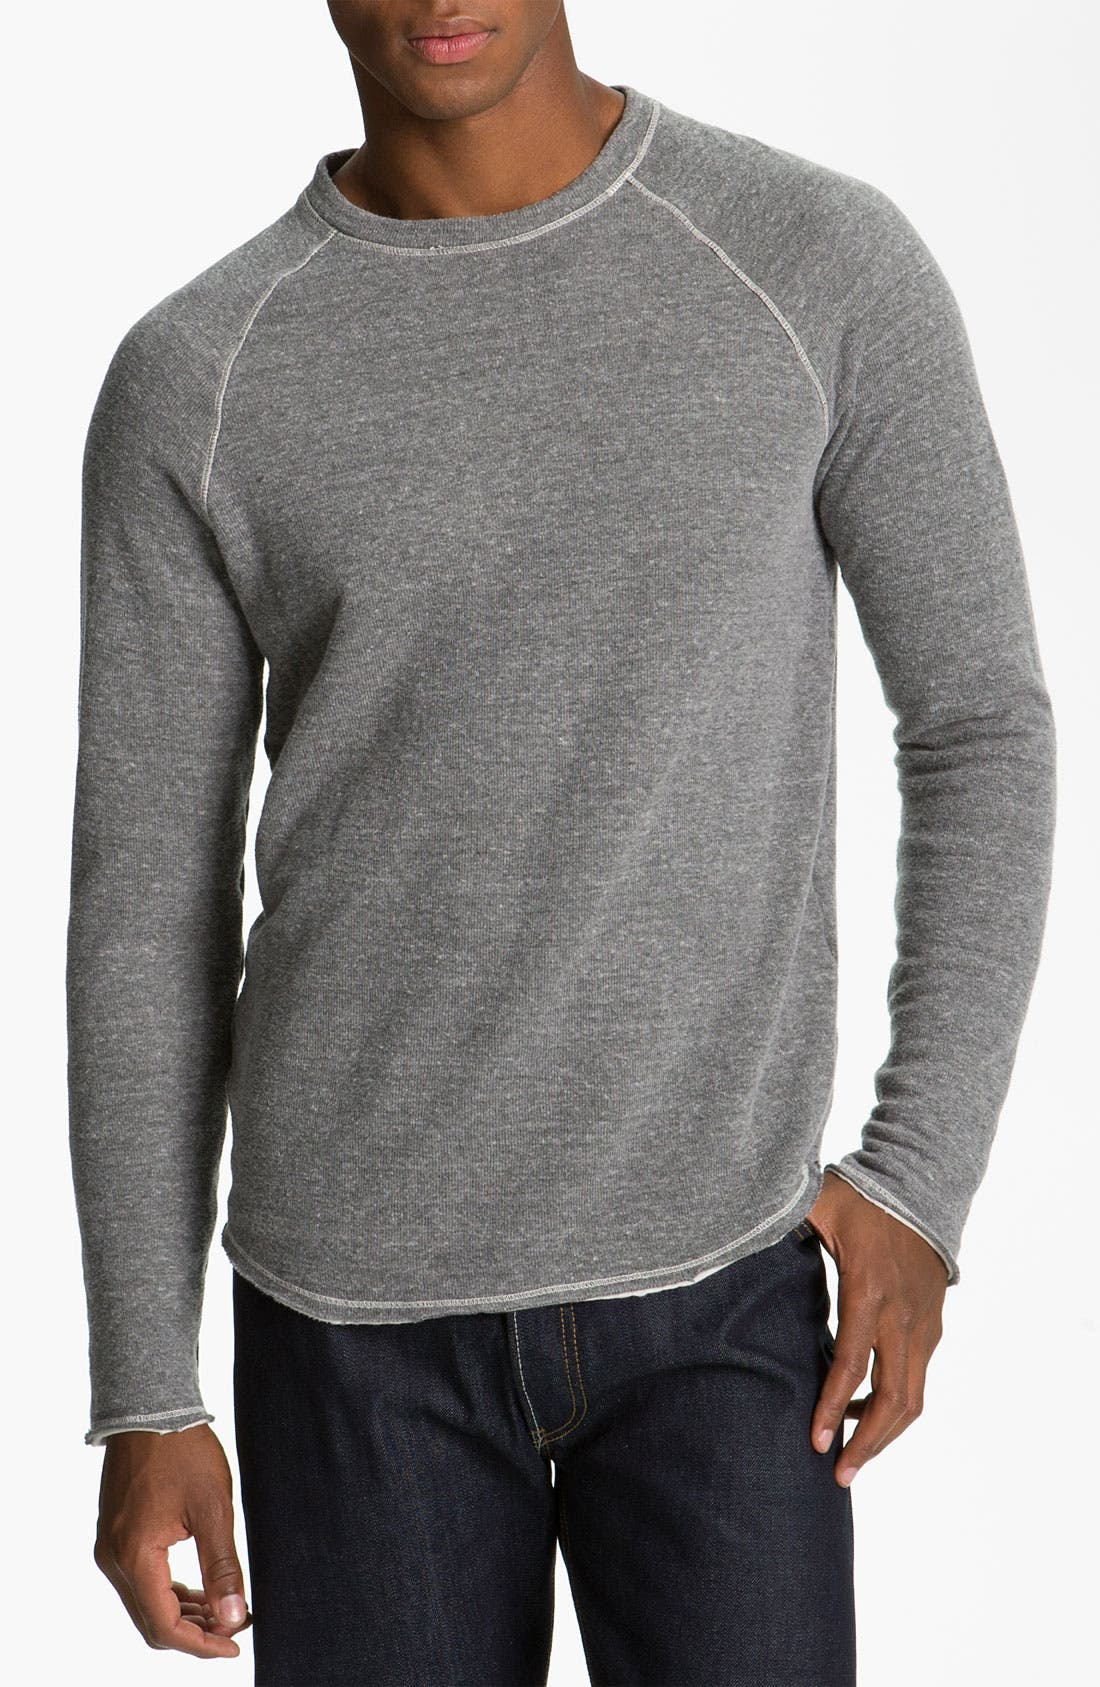 Alternate Image 1 Selected - Splendid Mills 'Everett' Crewneck Sweatshirt